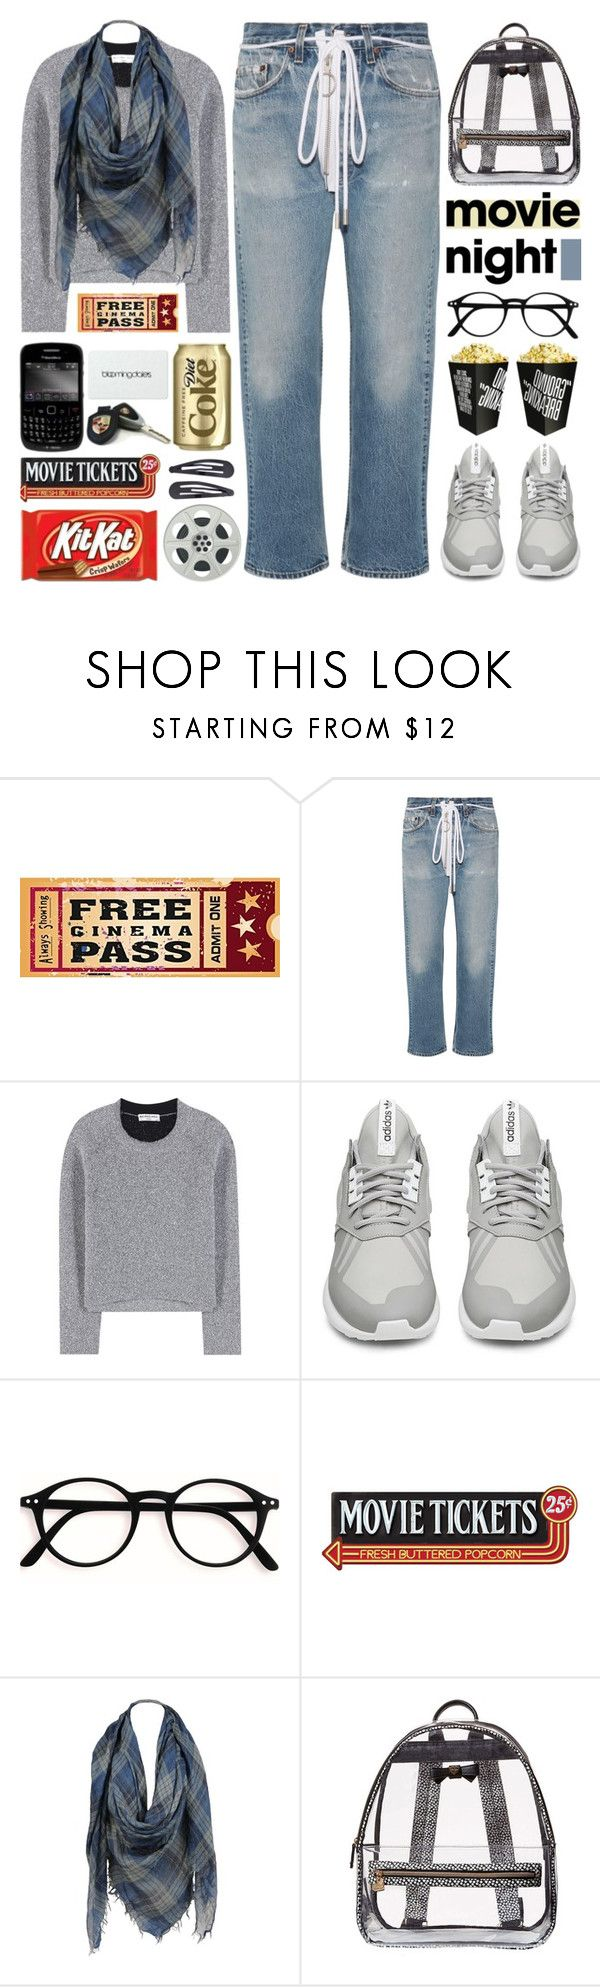 """""""Bring the Popcorn: Movie Night"""" by barbarela11 ❤ liked on Polyvore featuring Off-White, Balenciaga, adidas, Sylvia Alexander, Betsey Johnson, Lauren Conrad, Accessorize, Fall, movieNight and polyvoreeditorial"""